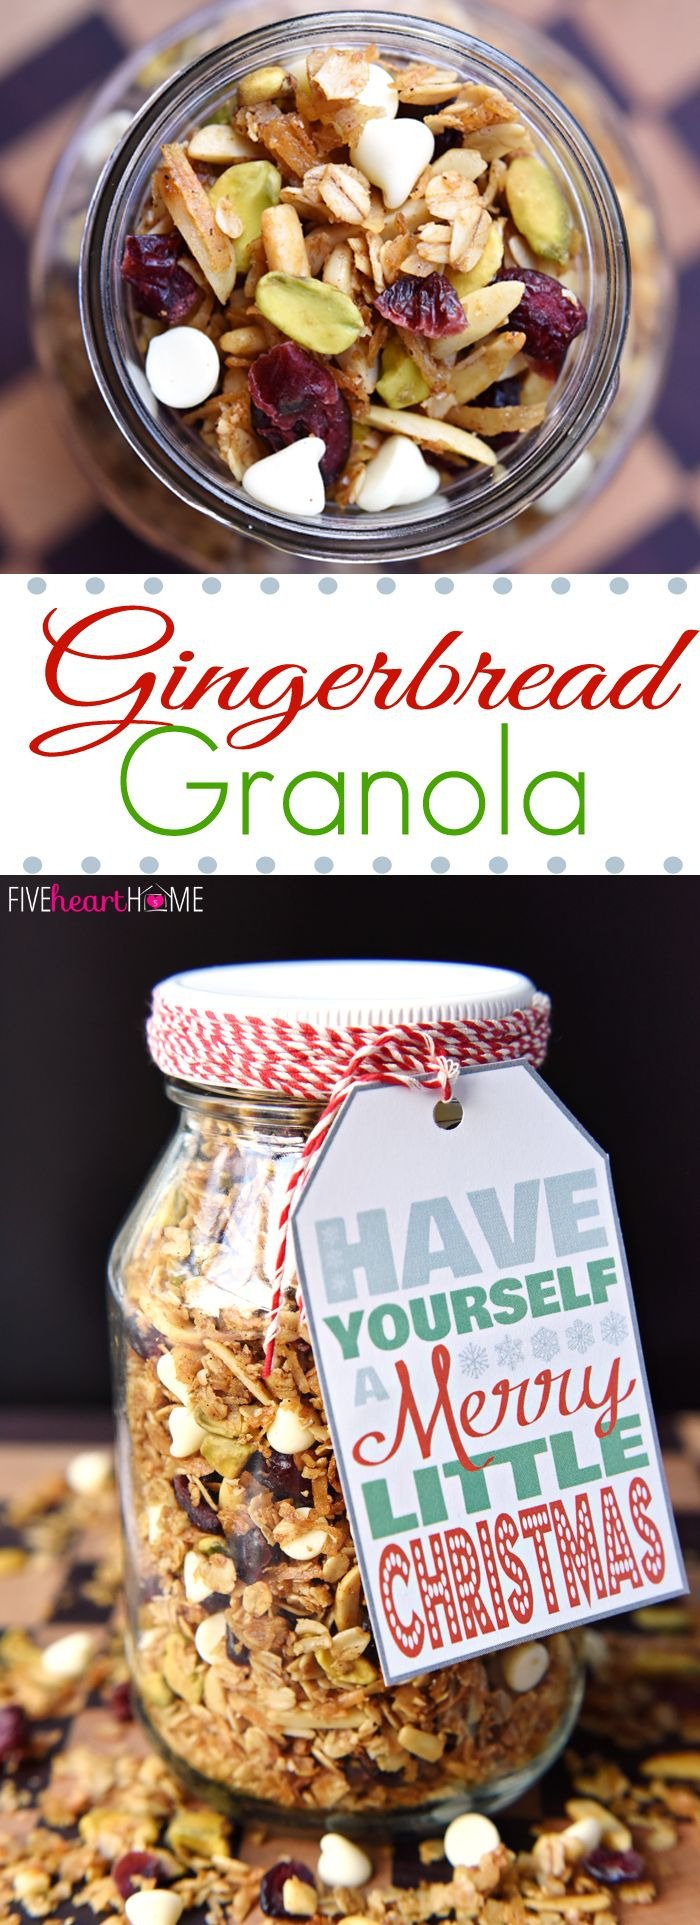 Gingerbread Granola with Cranberries, Pistachios, and White Chocolate Chips ~ warm spices and Christmas colors make this a perfect holiday breakfast or homemade food gift! | FiveHeartHome.com